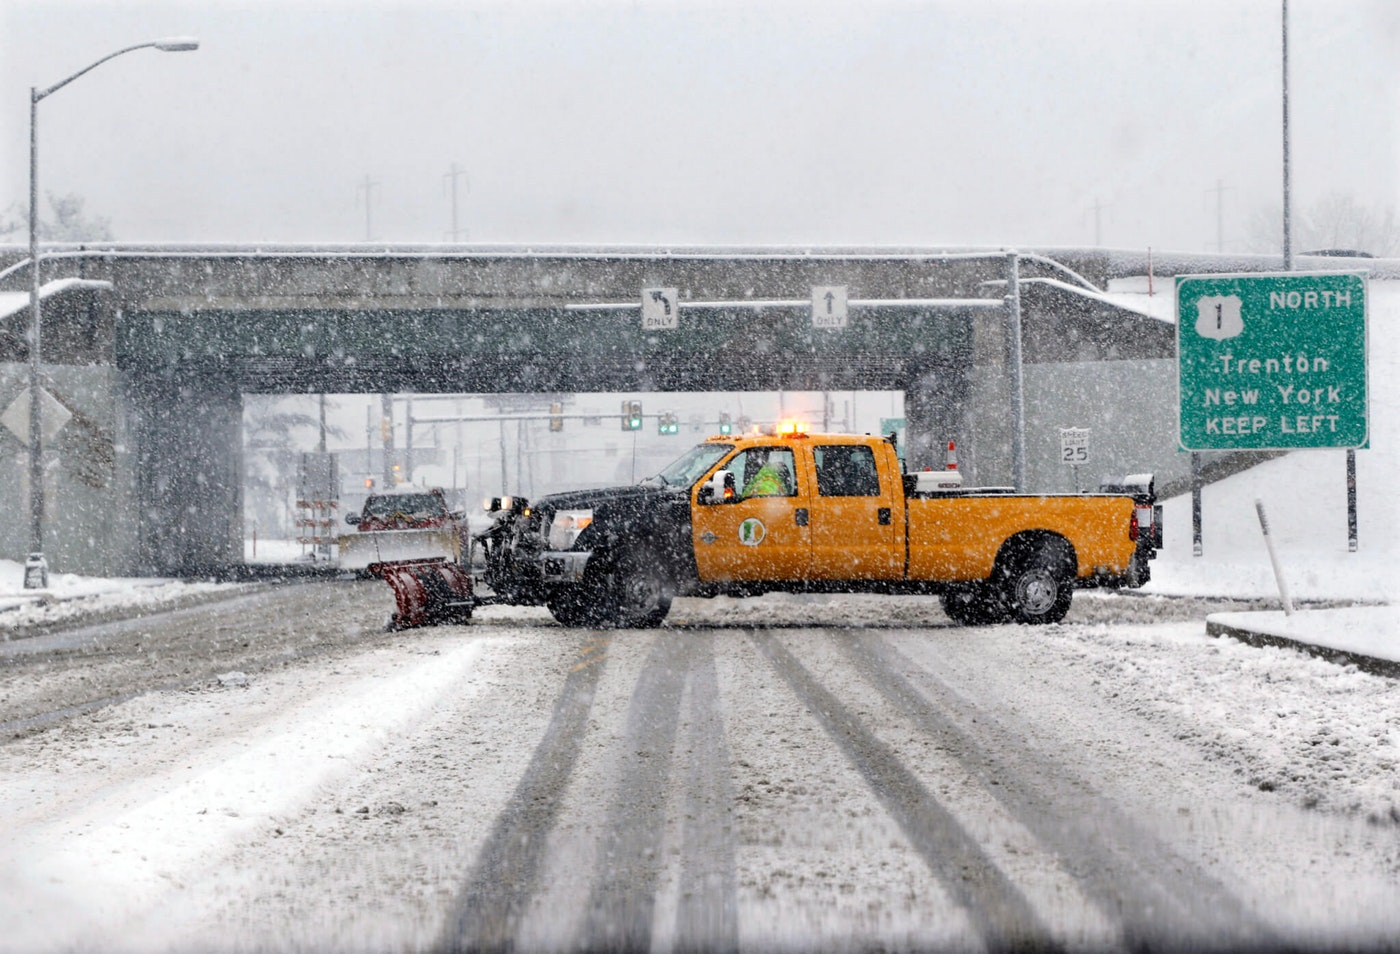 A snow plow drives across a road in a heavy snowfall in Morrisville, Pa., early Tuesday, Dec. 10, 2013. Much of Pennsylvania got socked Tuesday with another snowstorm that closed schools, delayed flights and made travel difficult through parts of the state. The governor's budget address was among the events postponed. (AP Photo/Mel Evans)